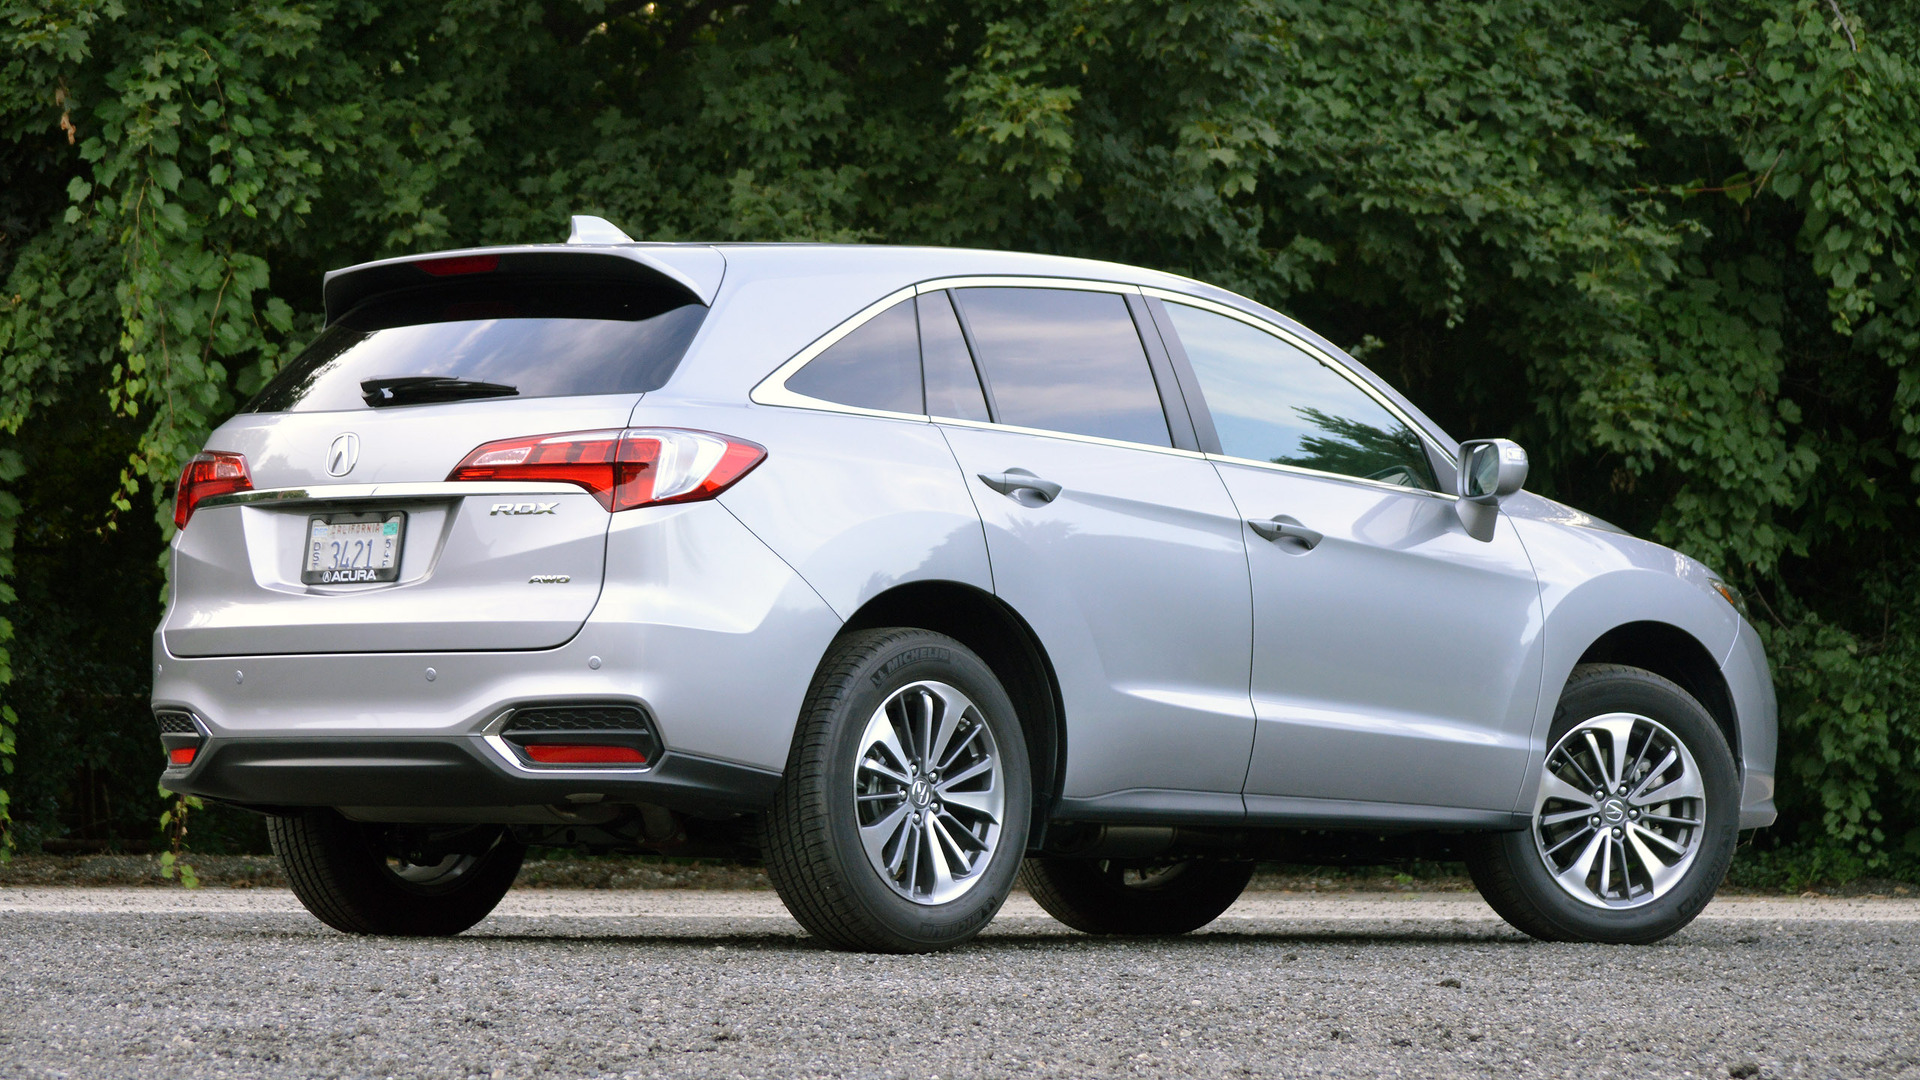 review test com acura youwheel part drive exterior rdx